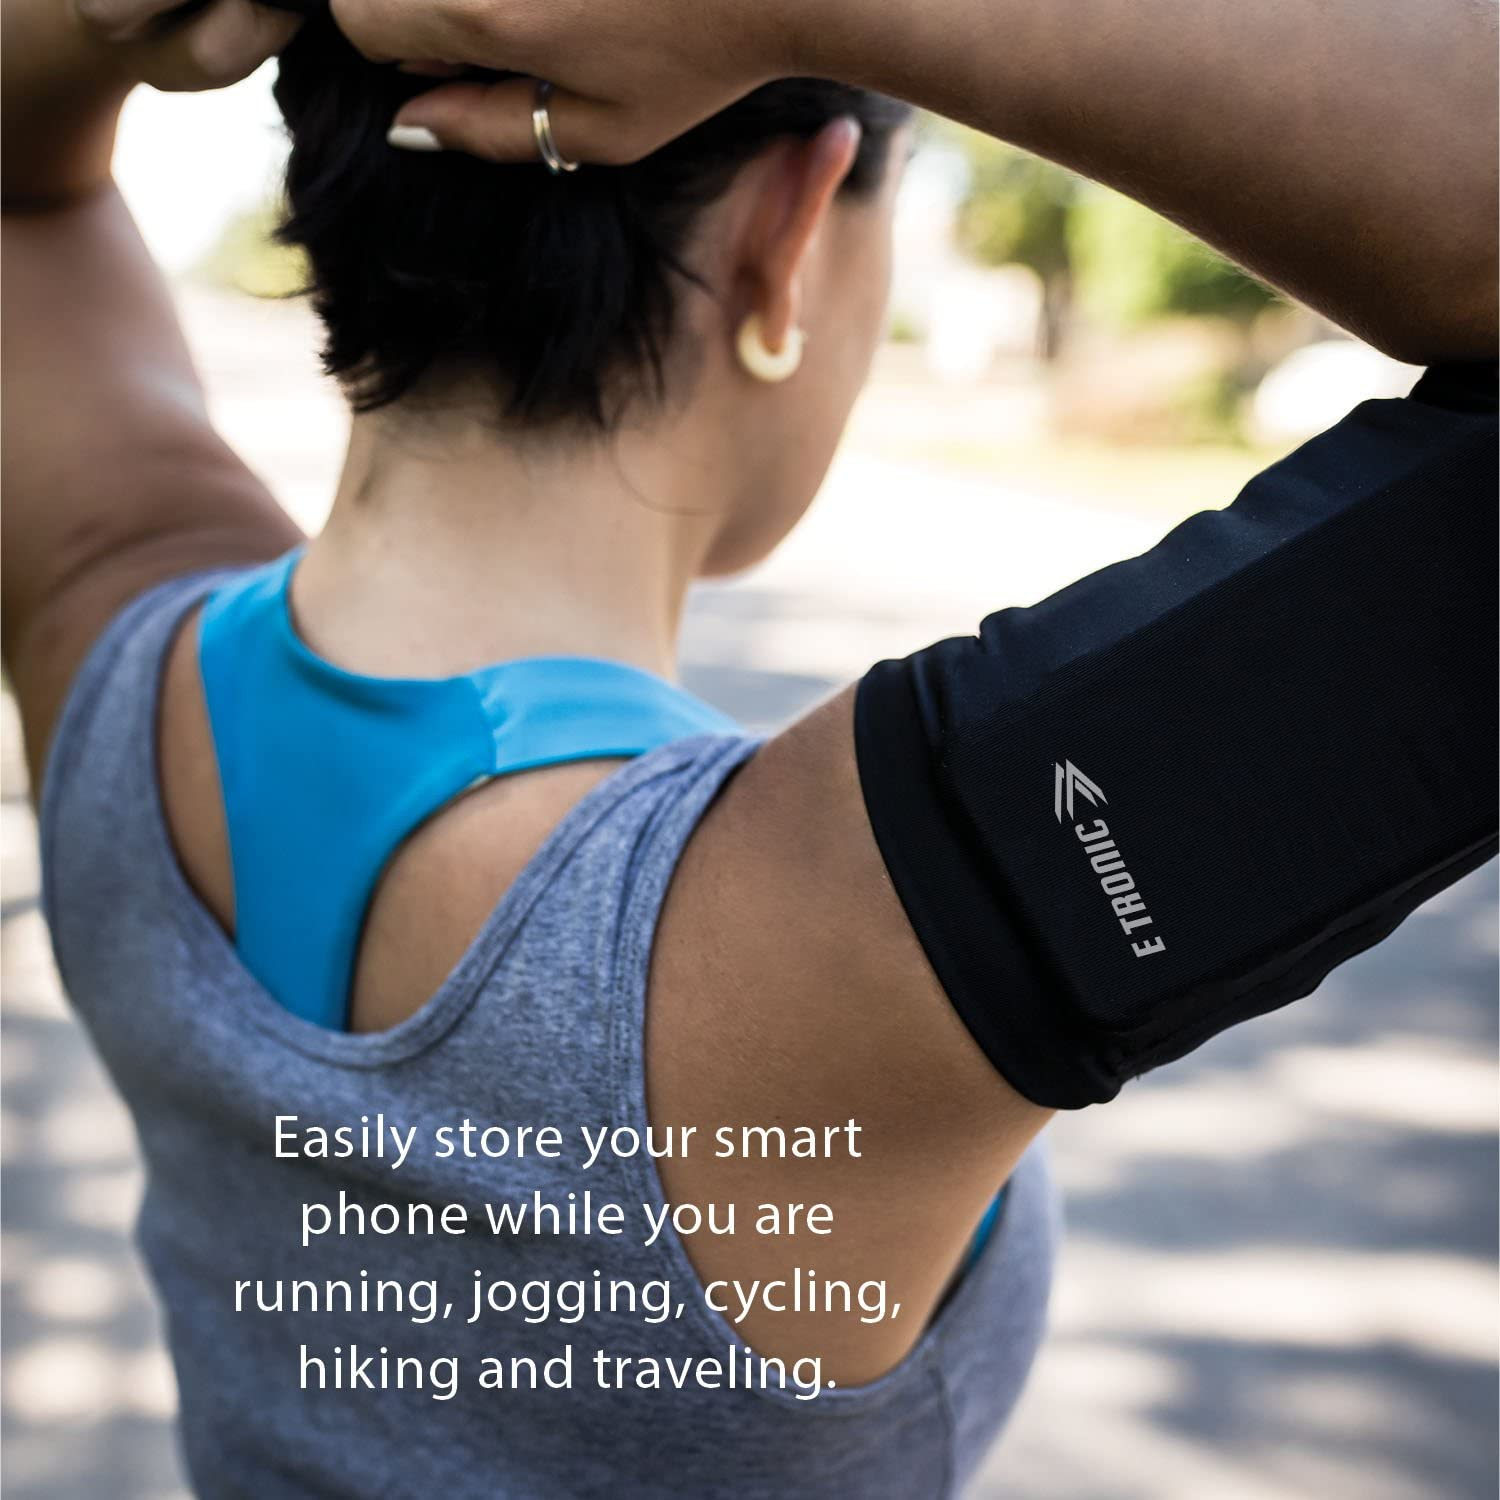 5 best armbands for iphone 12 pro pro max armbands for running herstylecode 5 Best Armbands for iPhone 12, Pro, Pro Max - Armbands for Running